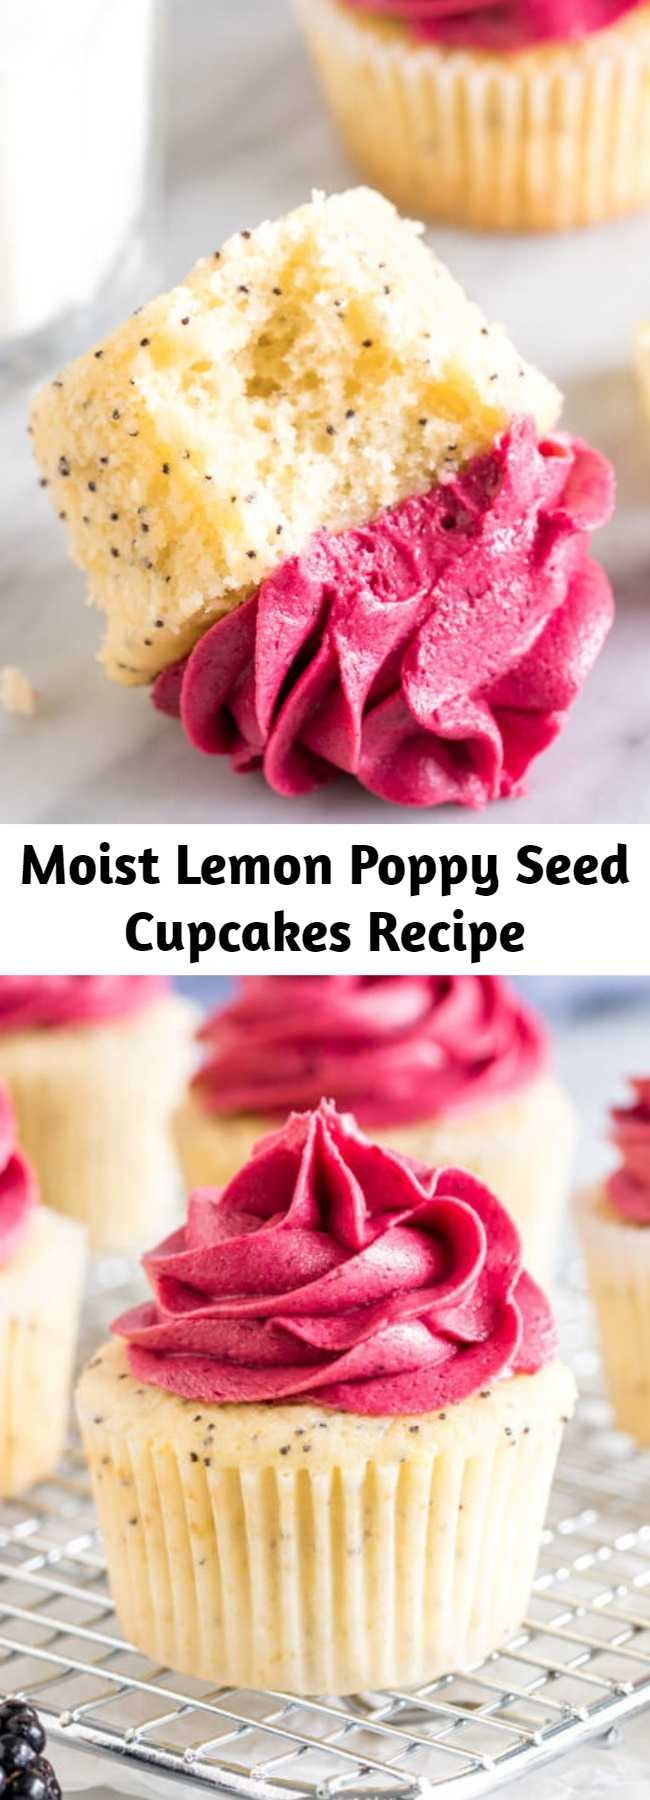 Moist Lemon Poppy Seed Cupcakes Recipe - Moist and tender, these lemon poppy seed cupcakes are bursting with a fresh lemon flavor and filled with tiny, crunchy poppy seeds. The blackberry frosting tastes like biting into fresh berries, and the beautiful color combination makes these absolutely stunning.